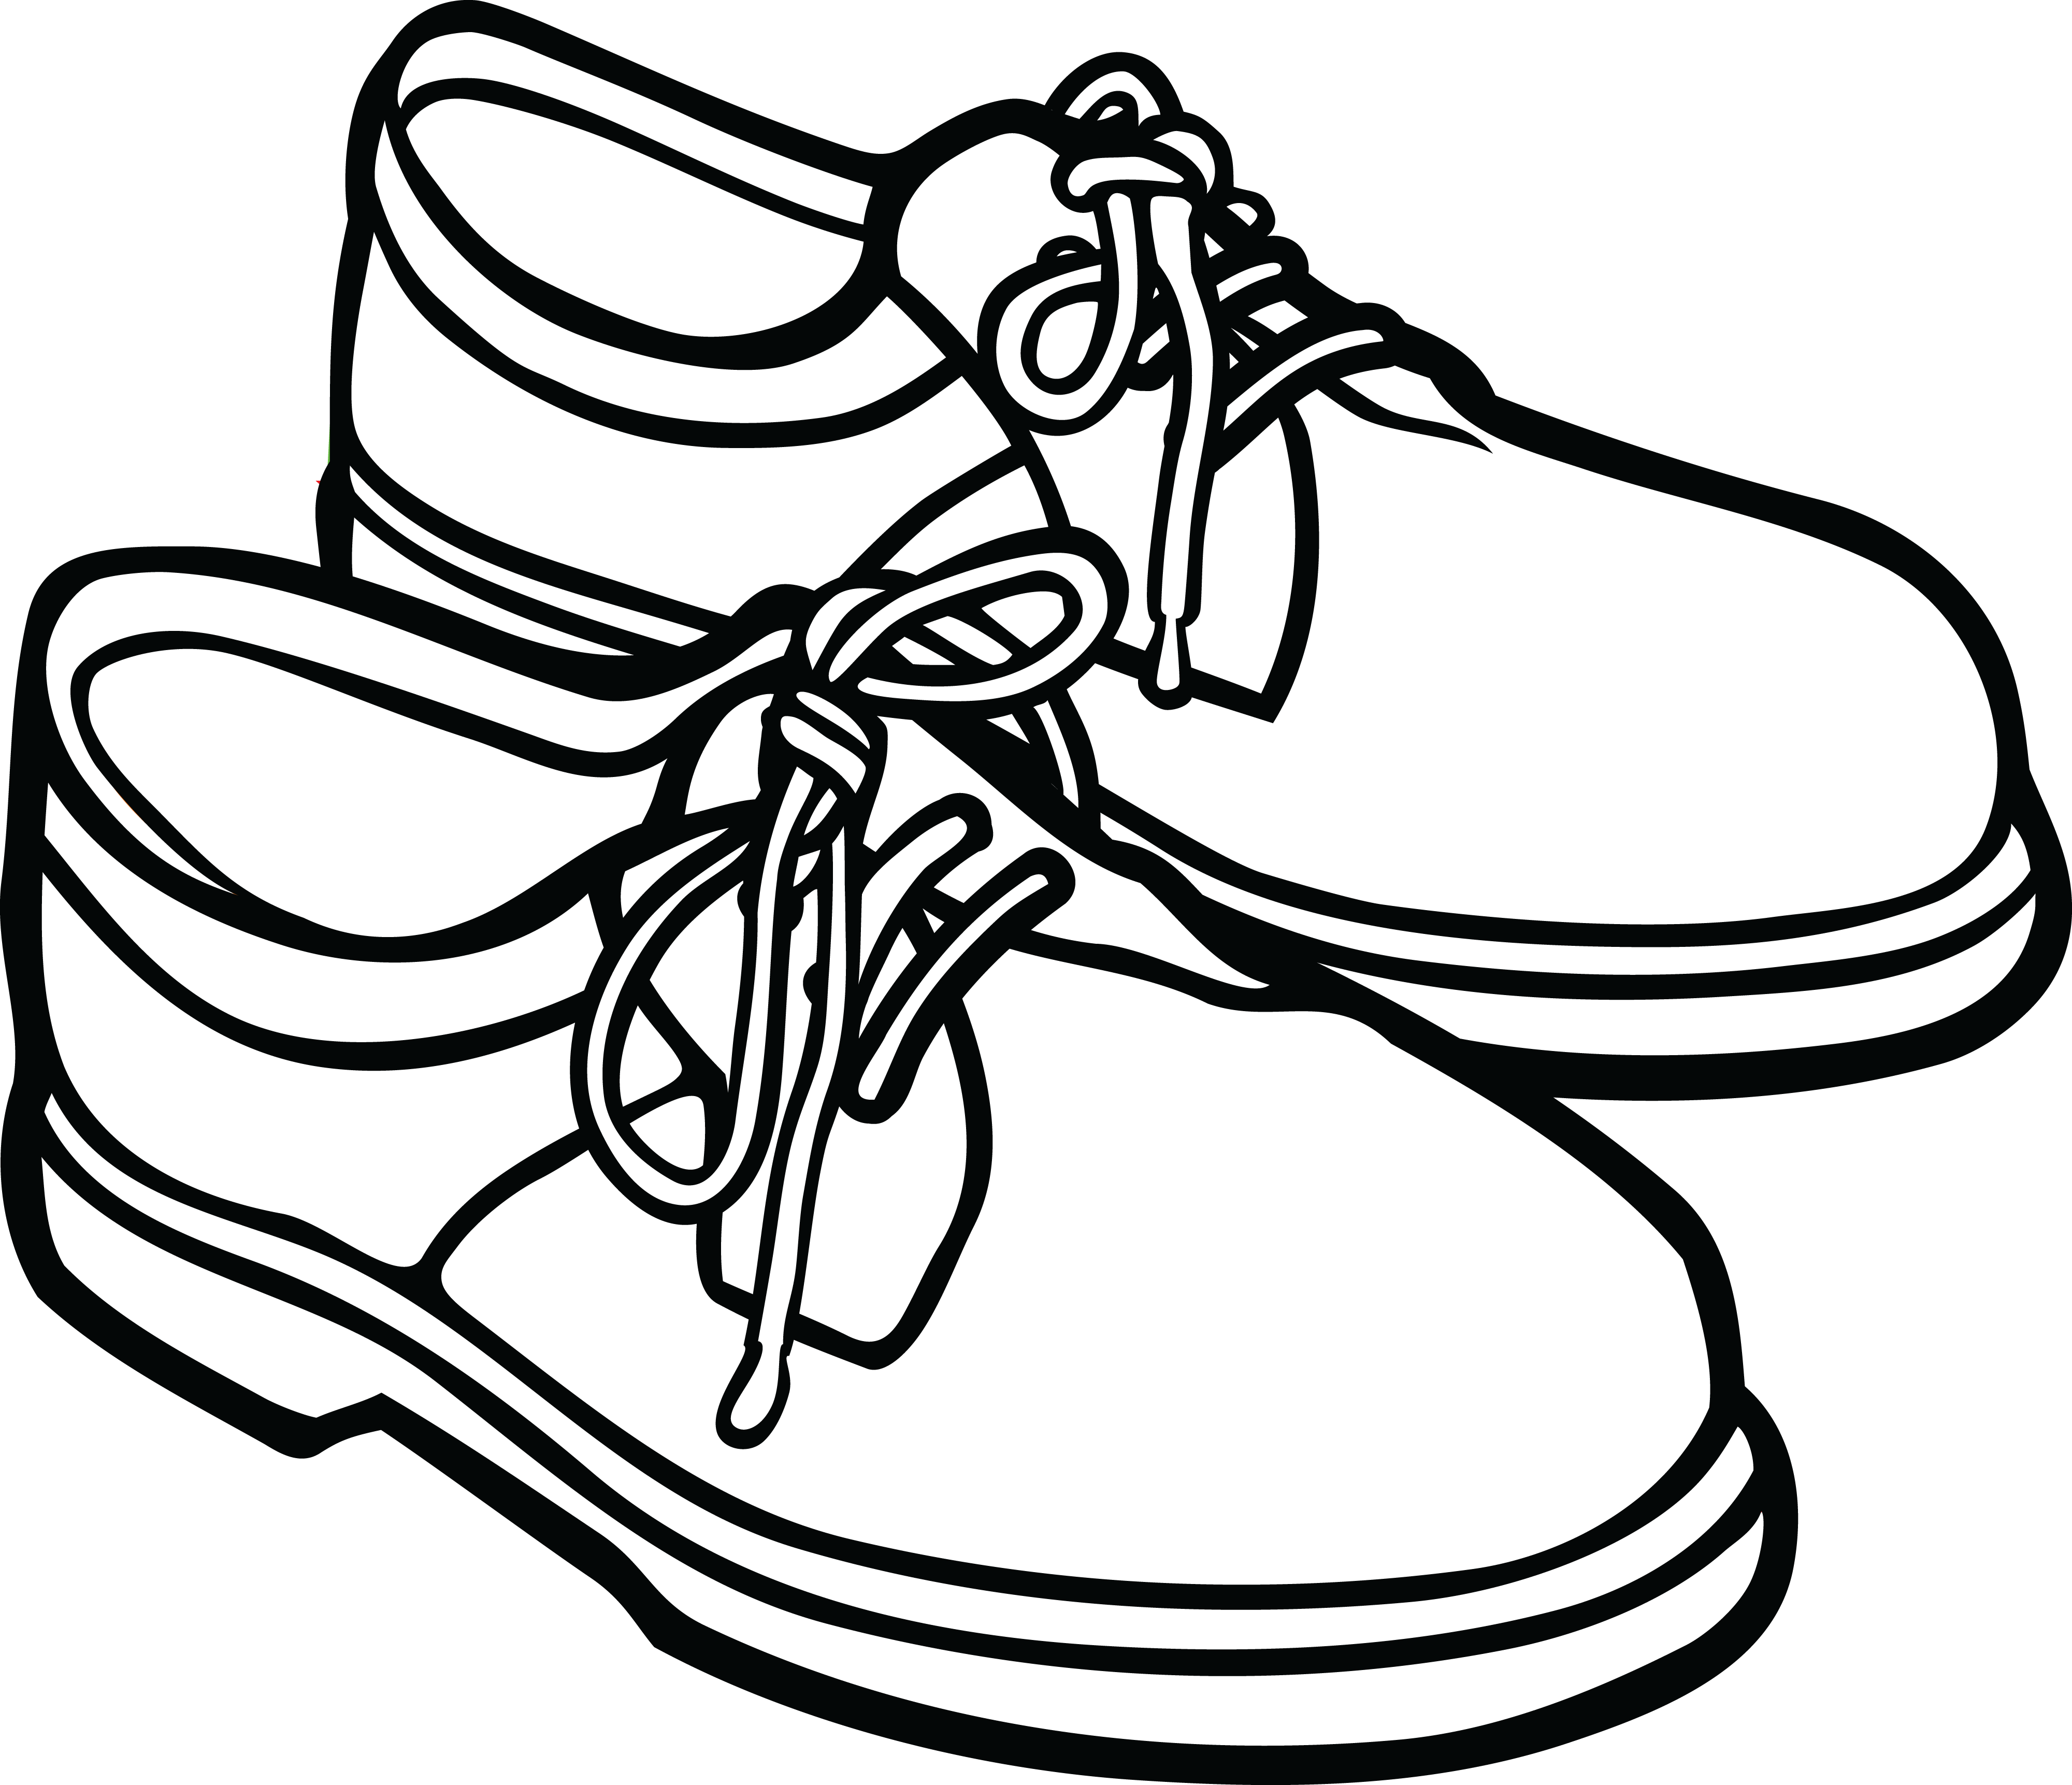 clipart royalty free library black and white shoes clipart #58668987